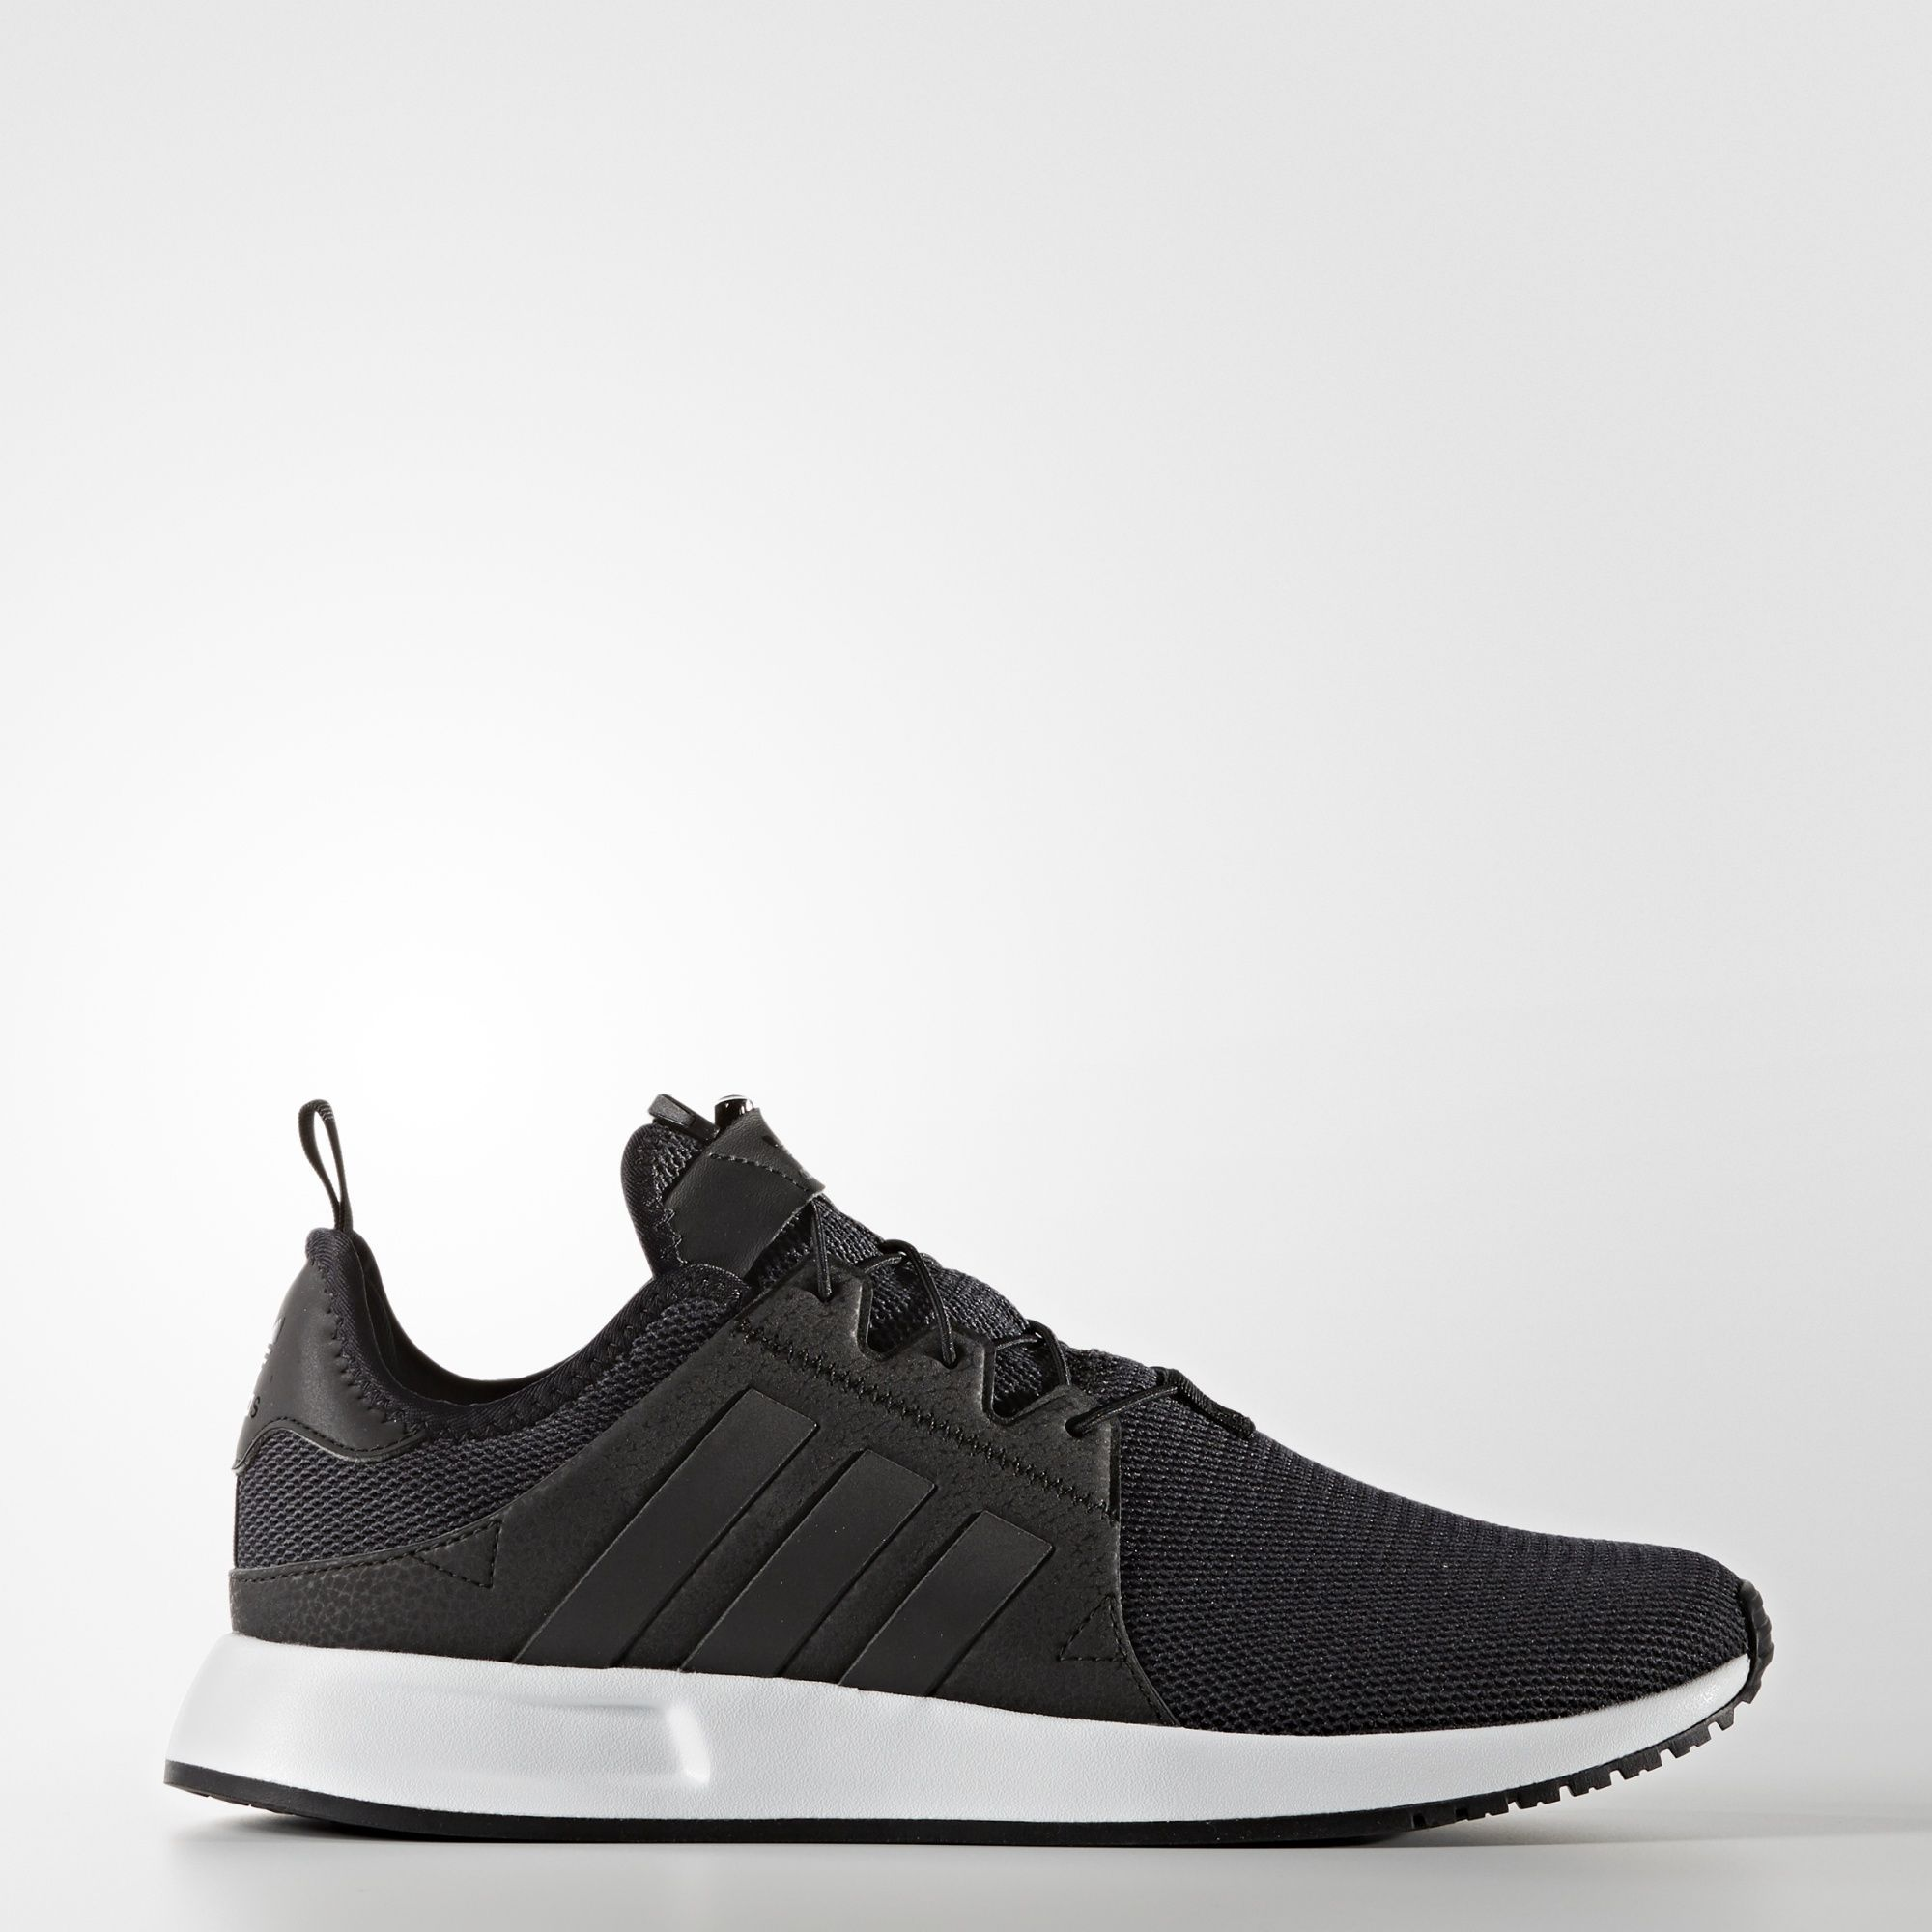 adidas X_PLR Shoes | Fit Pieces | Adidas sneakers, Adidas